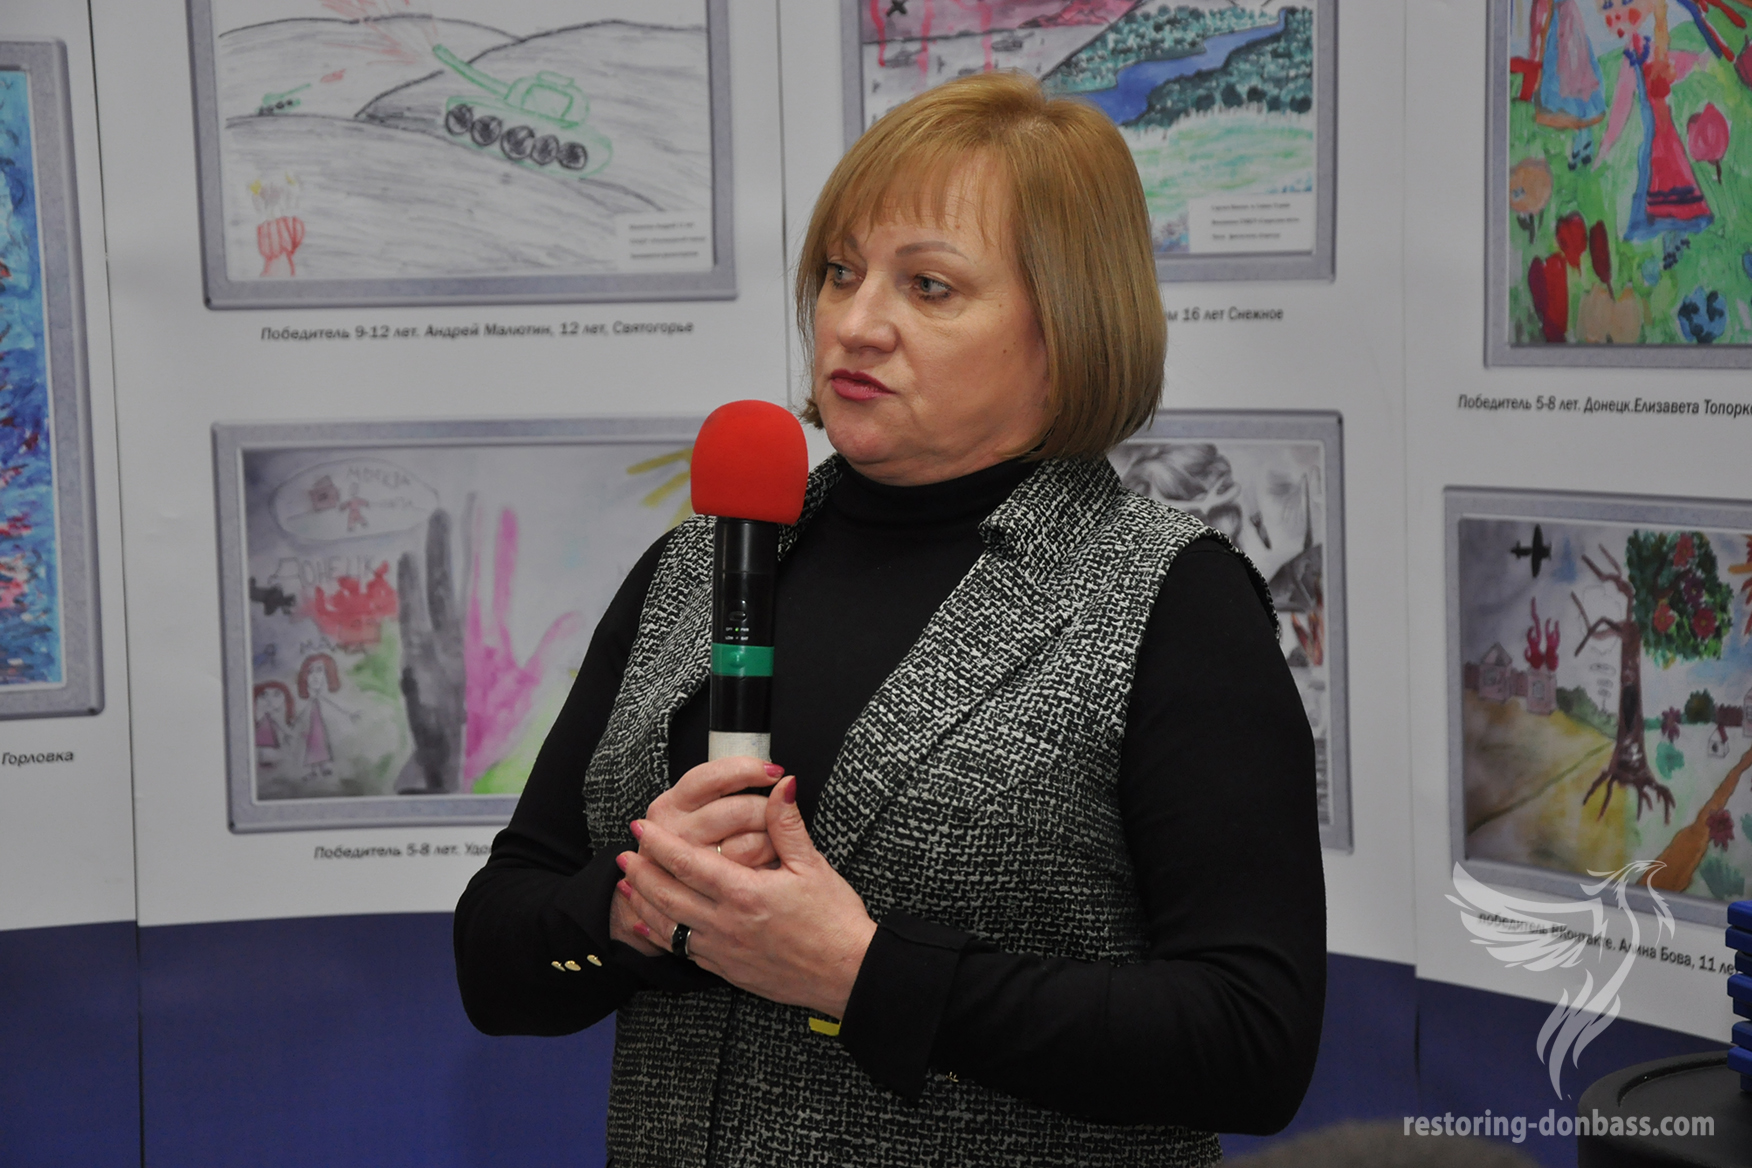 The head of the initiative Elena Petryaeva on Kramatorsk exhibition